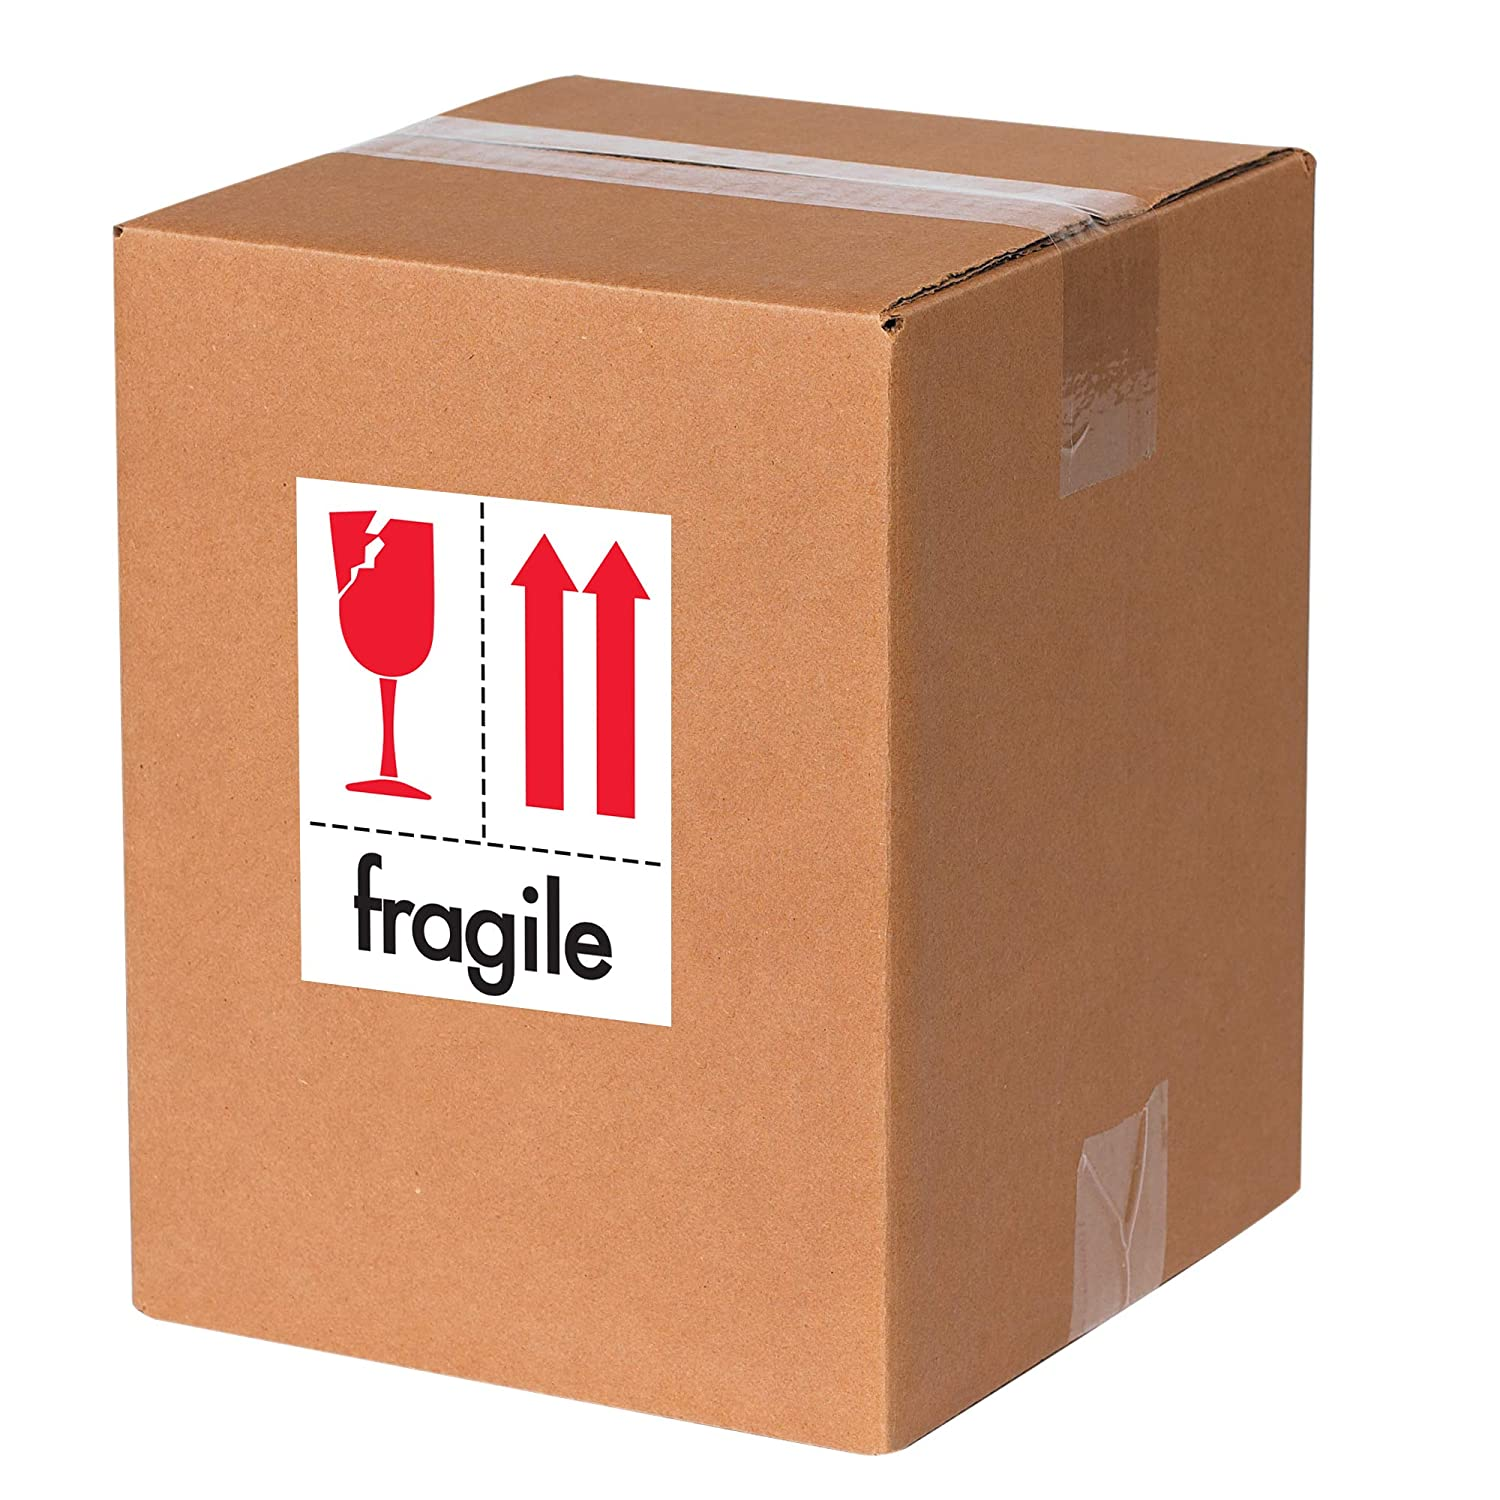 Red//White//Black 3 x 4 Tape Logic TLIPM319 Labels,Fragile 1 Roll of 500 Labels Wine Glass Image with Two Arrows